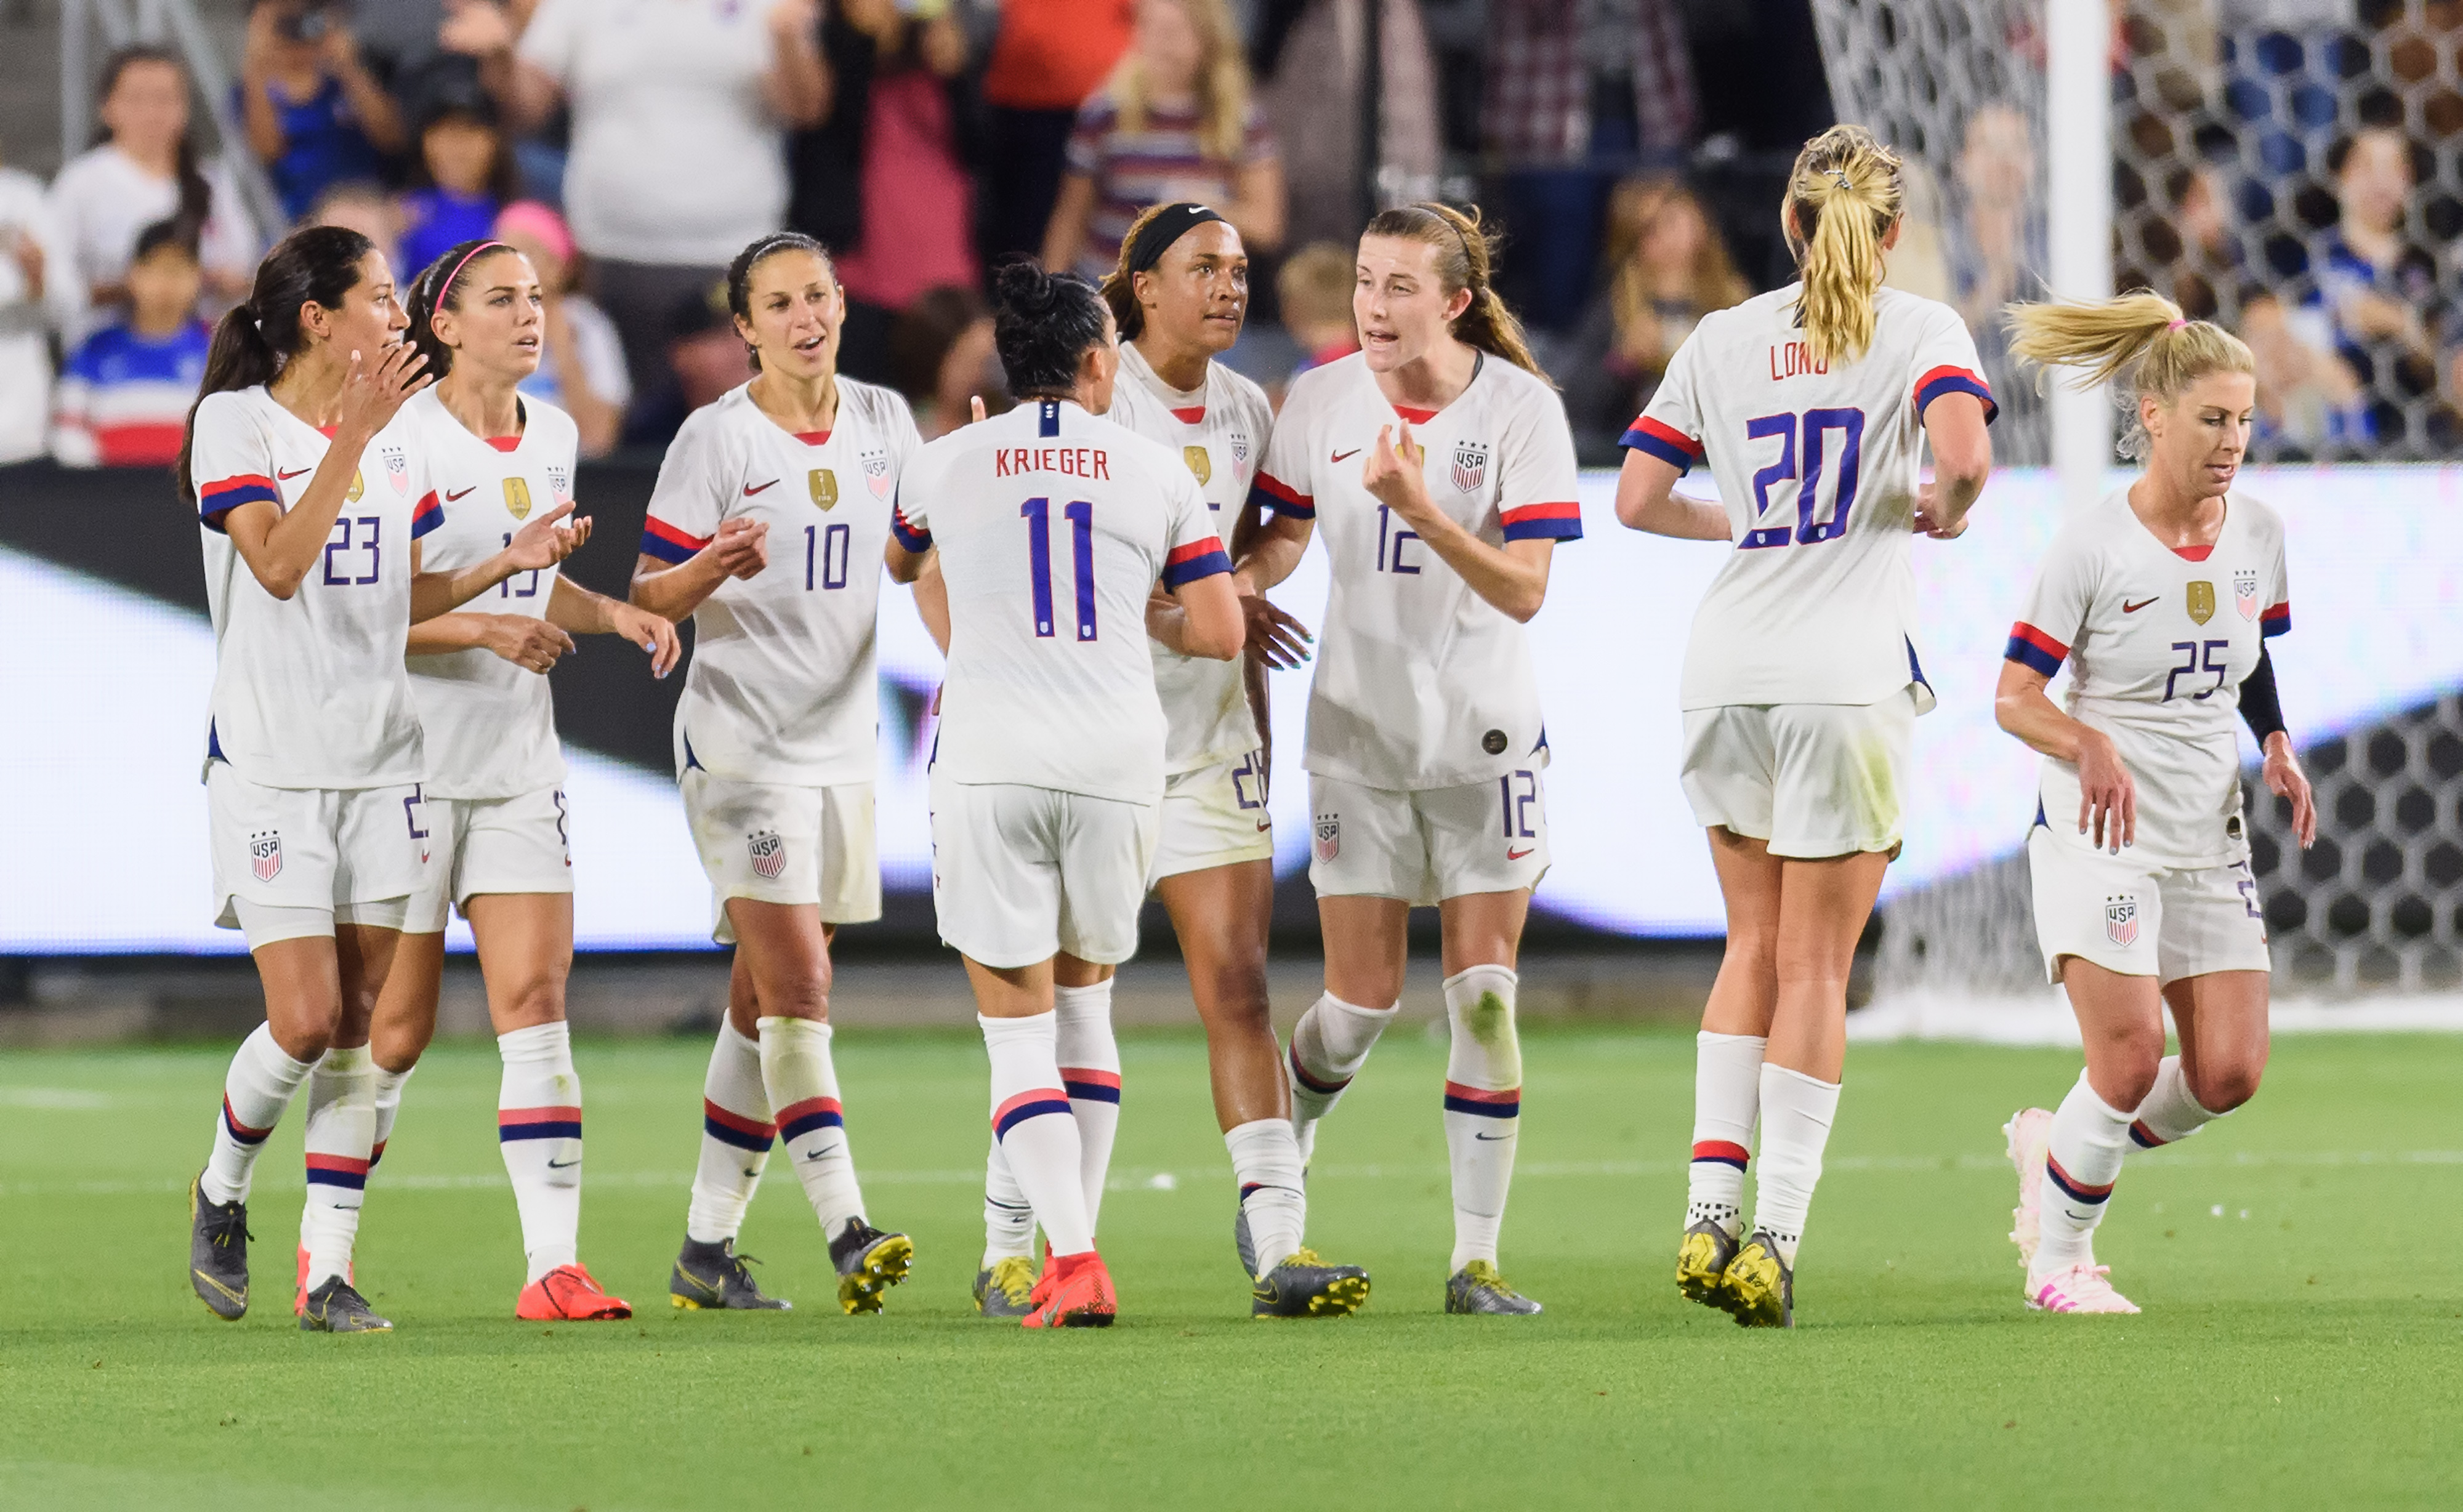 Westlake Legal Group USWNTDB04072019593 US Women's National Team turns to app to maintain competitive advantage heading into World Cup fox-news/sports/soccer fox-news/health/healthy-living/womens-health fox news fnc/sports fnc Emily DeCiccio article 56be7239-033d-5199-9ea7-3dec3d02d65b